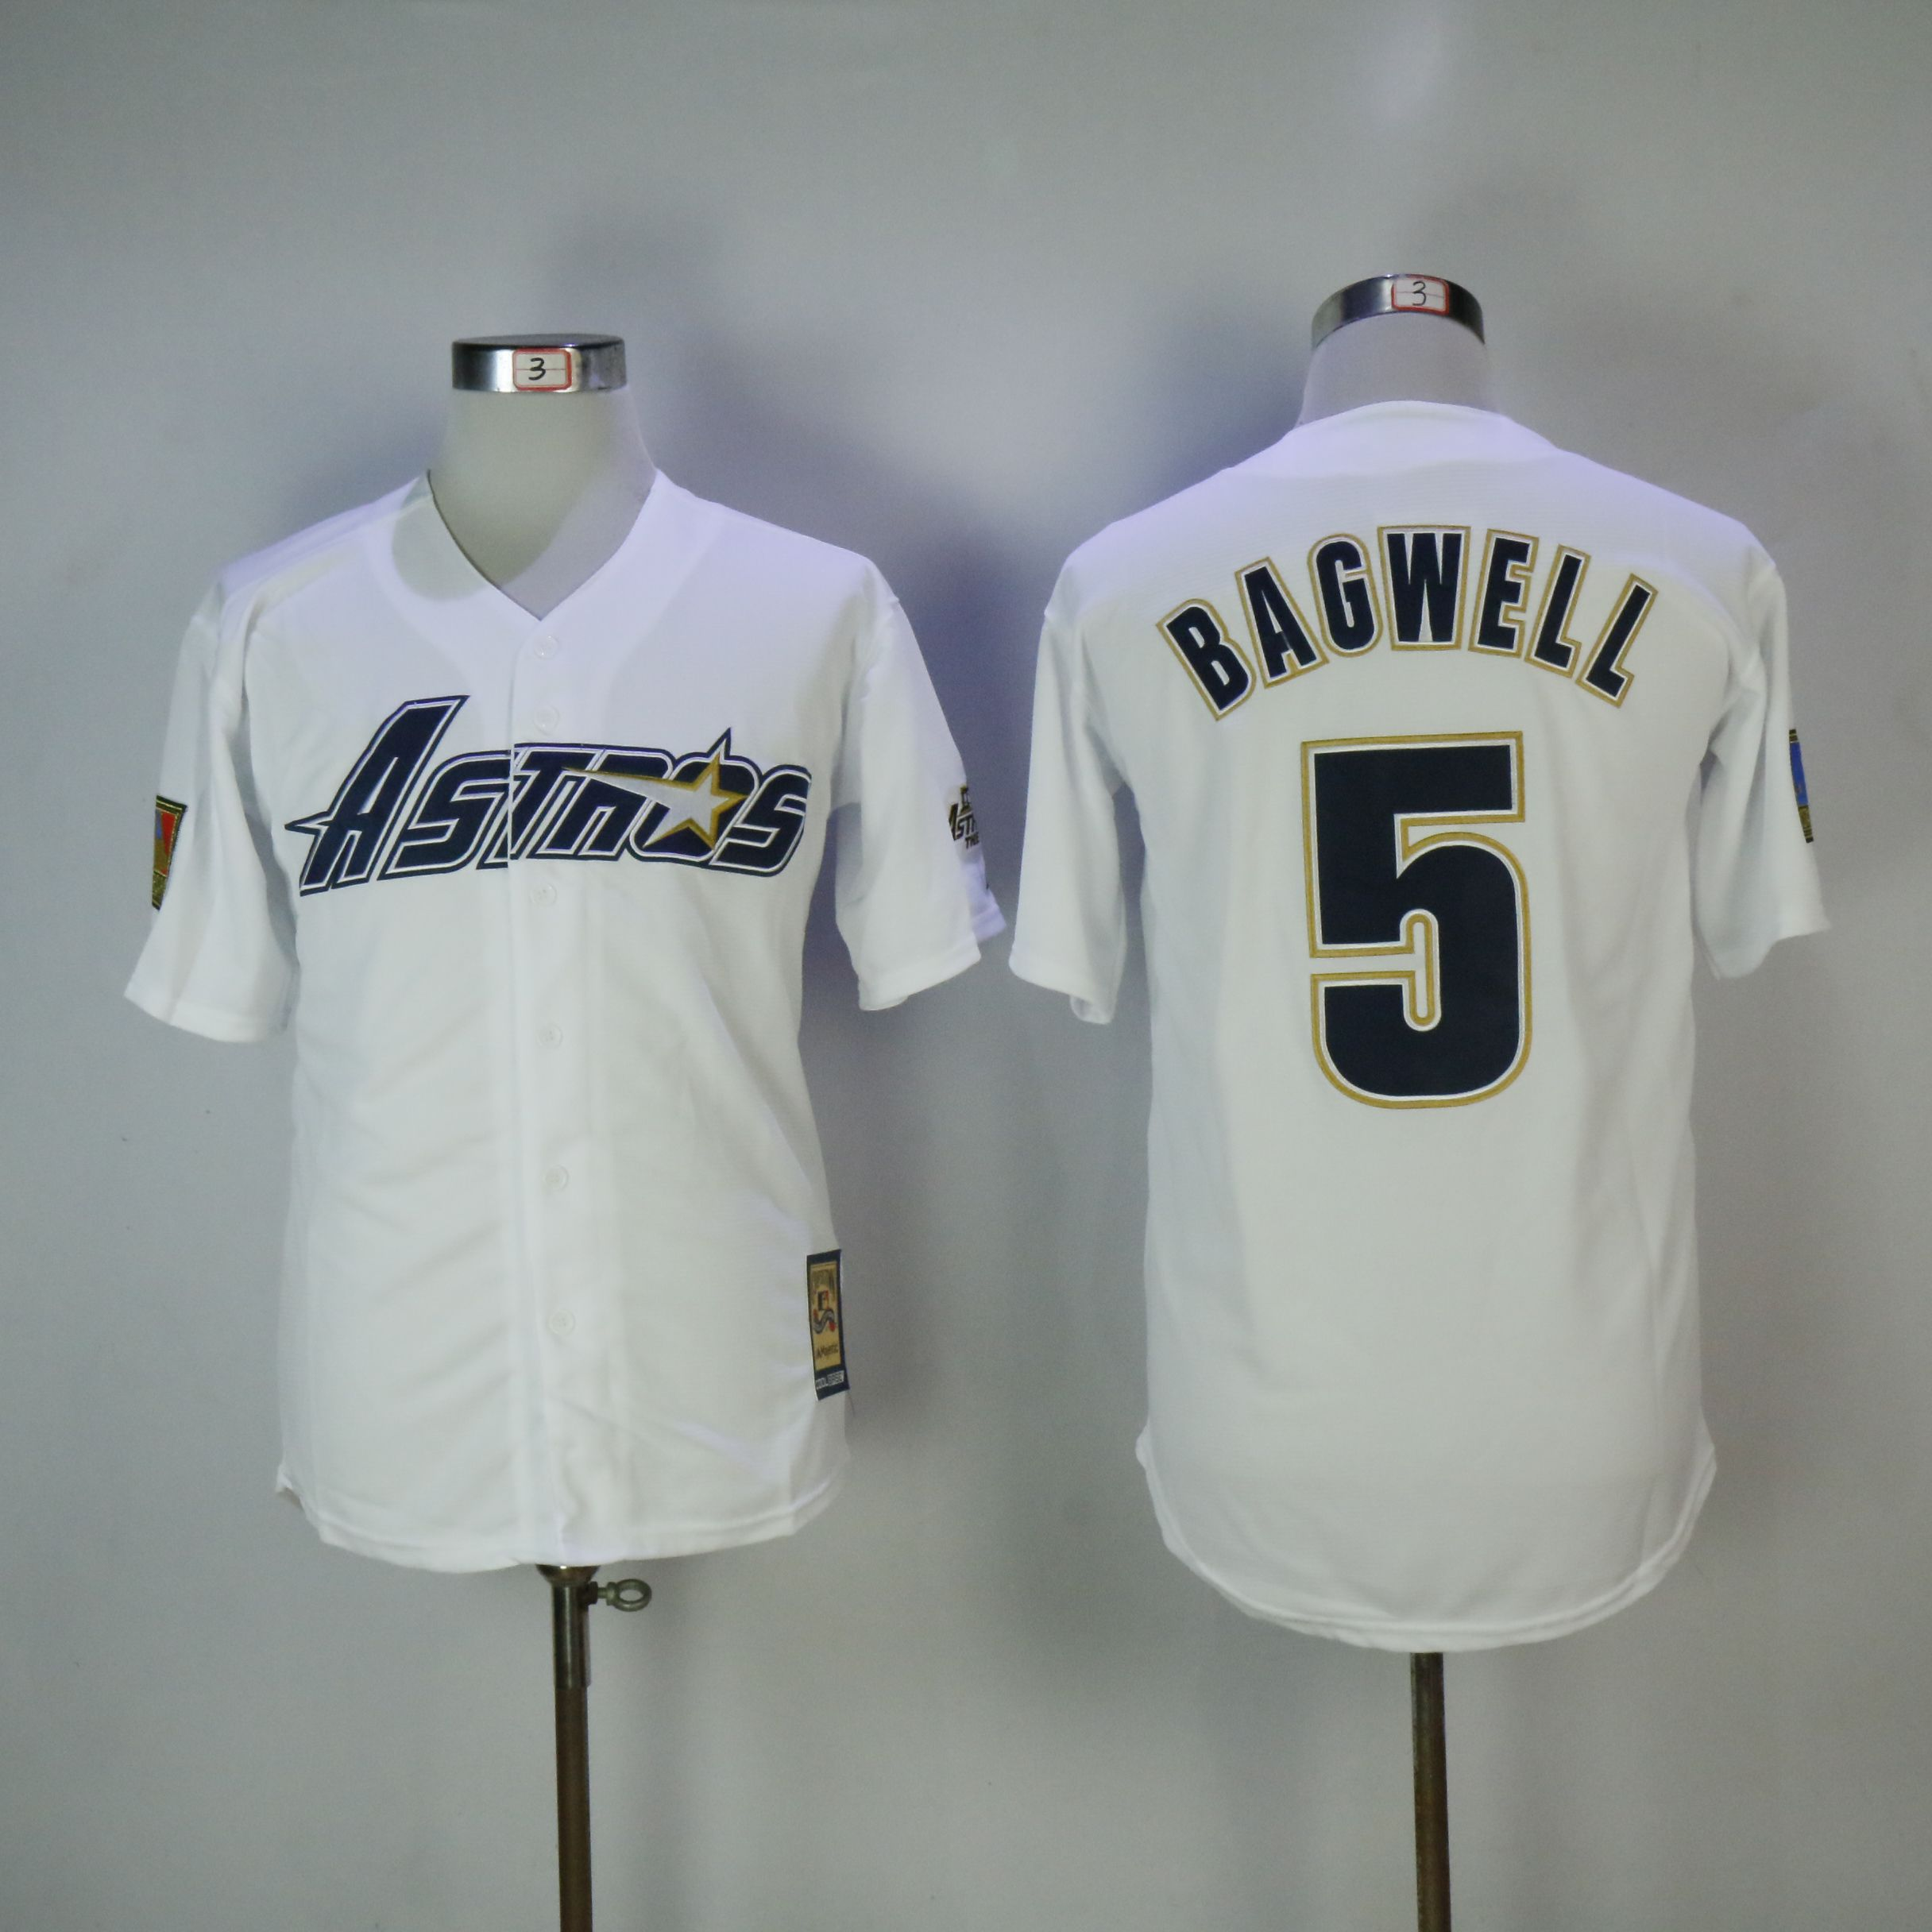 Men Houston Astros 5 Bagwell White MLB Jerseys1